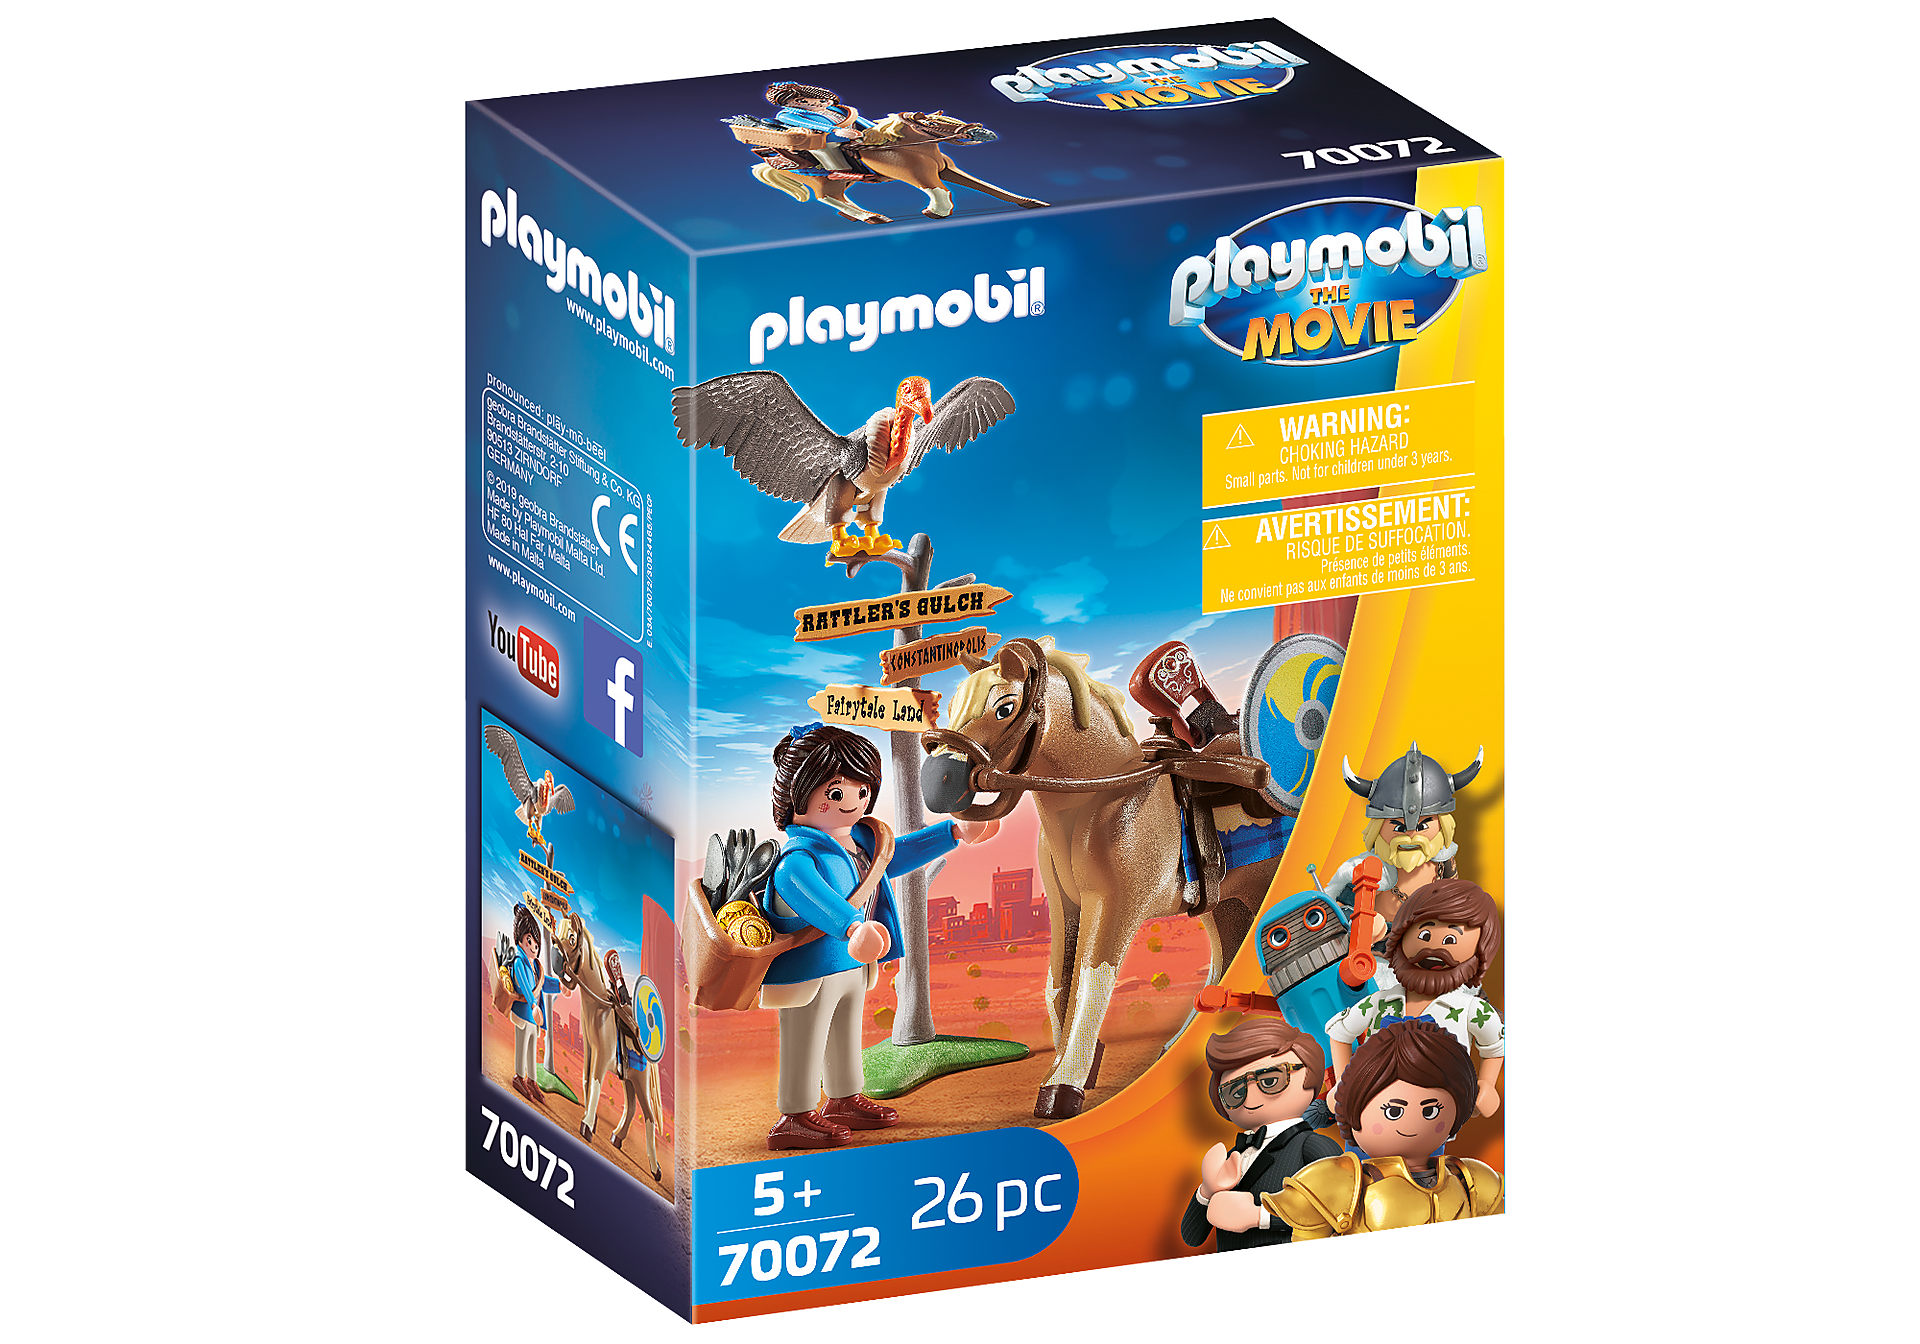 http://media.playmobil.com/i/playmobil/70072_product_box_front/PLAYMOBIL: THE MOVIE Marla z koniem